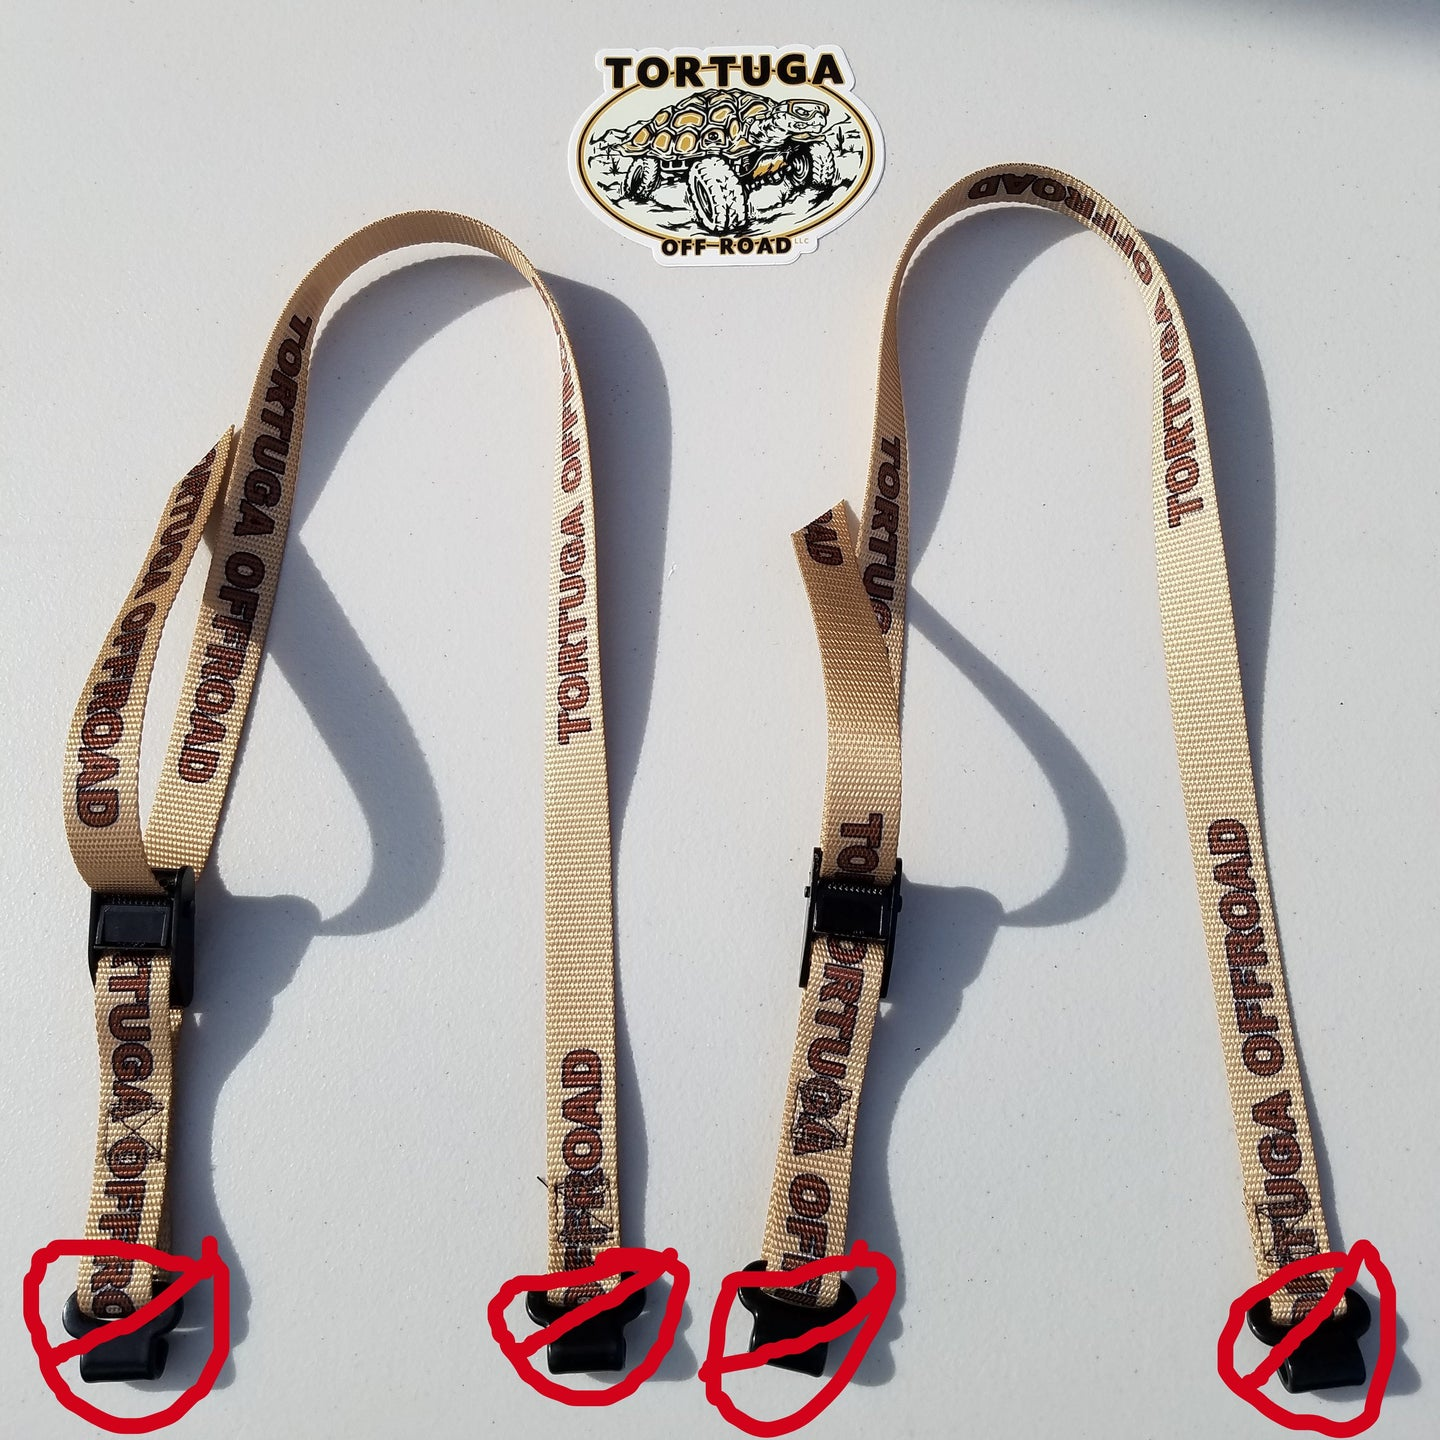 Tortuga Off Road Cooler/Fridge Straps - Double Foot